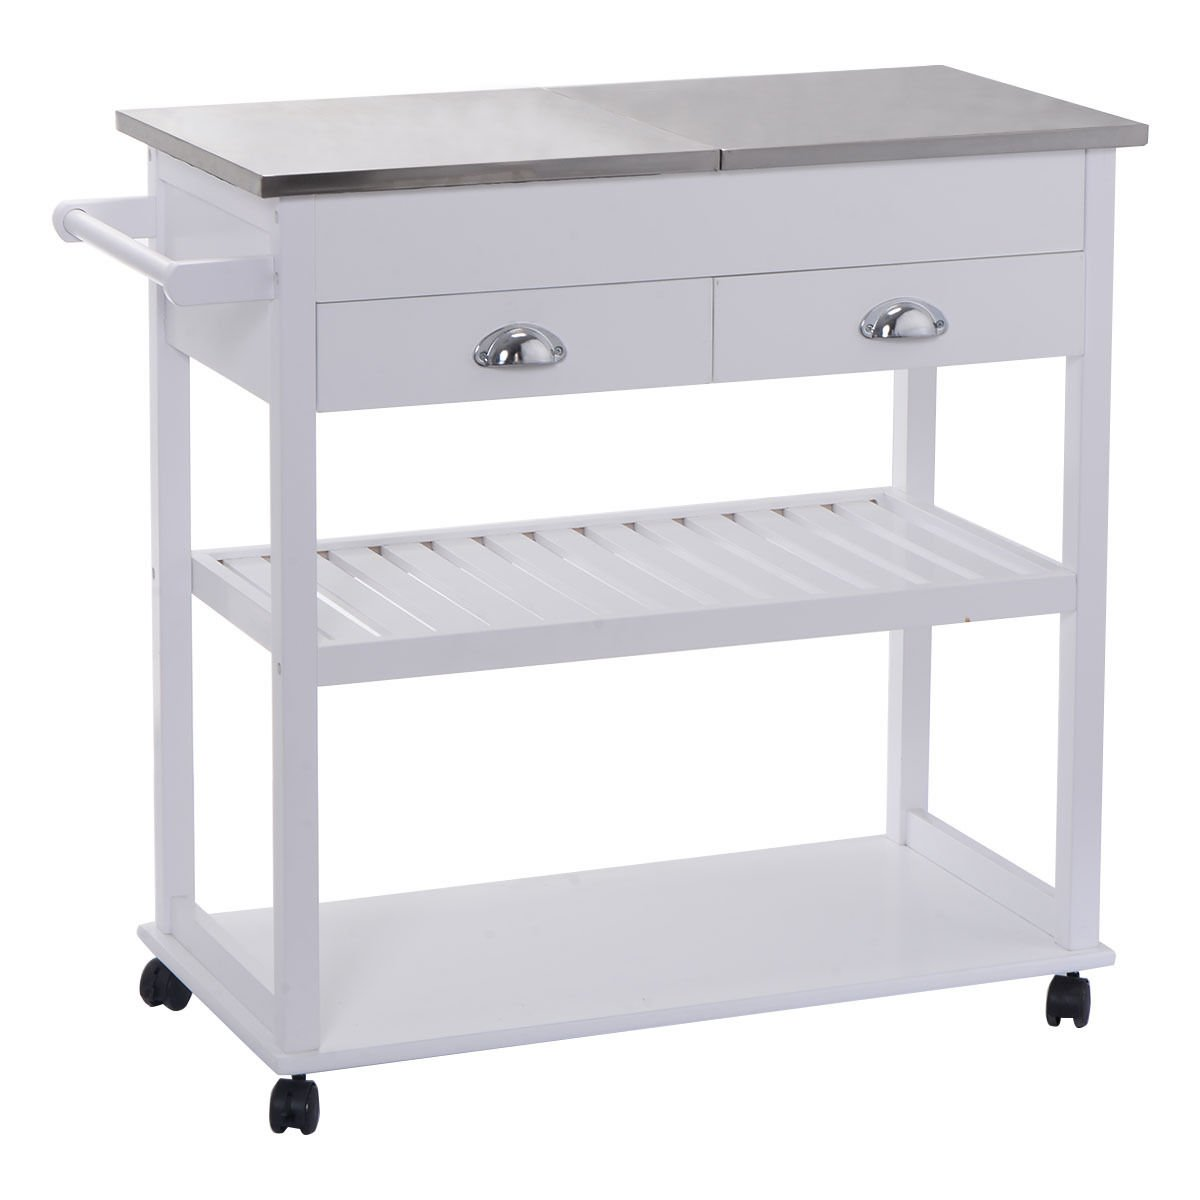 White rolling kitchen trolley cart stainless steel flip top drawers casters which is a perfect addition to your apartment or home It provides both functionality